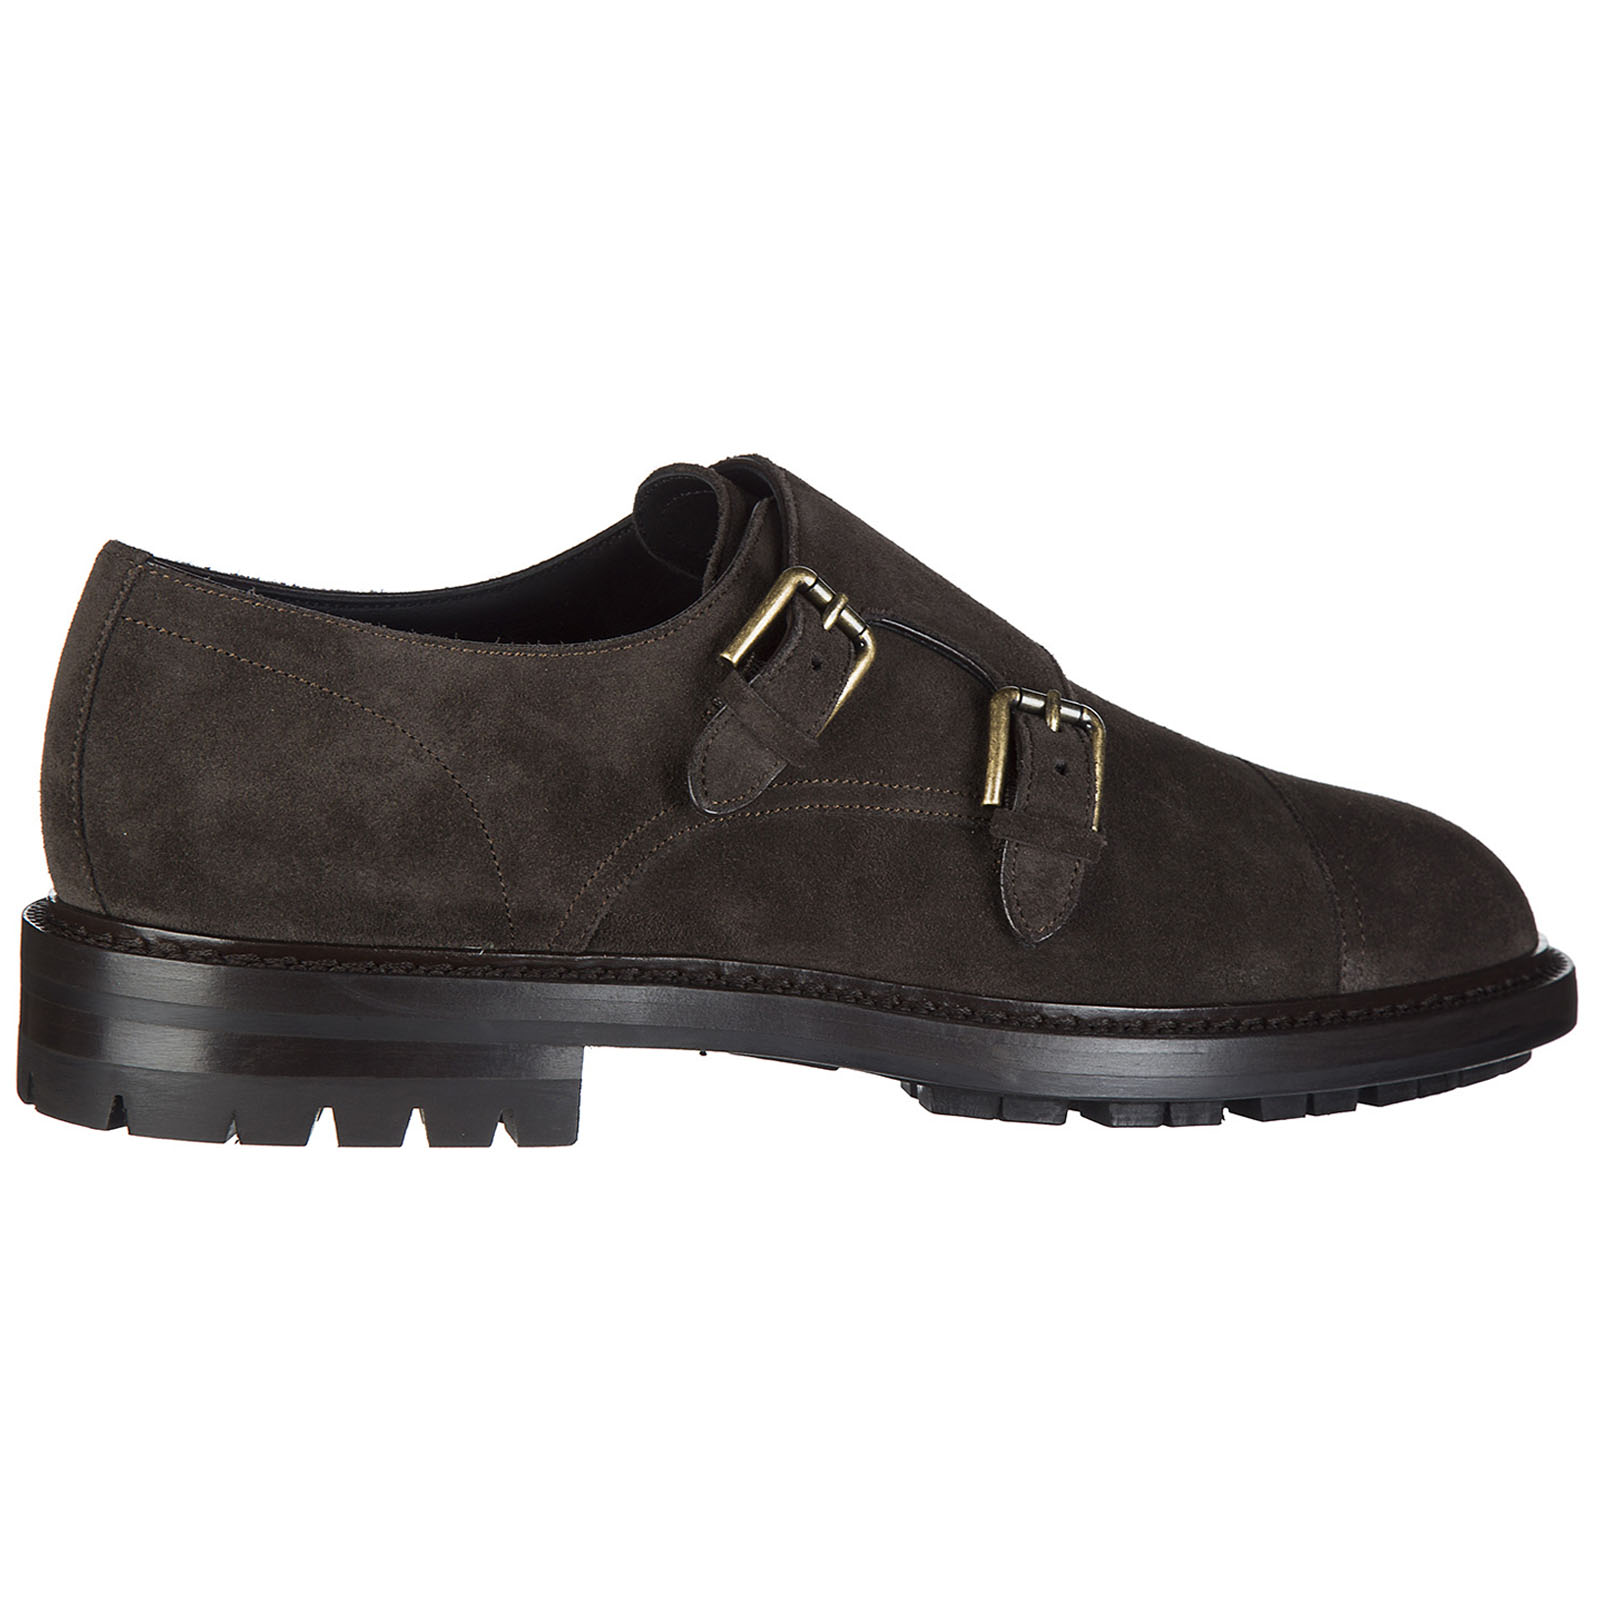 Men's classic suede formal shoes slip on marsala